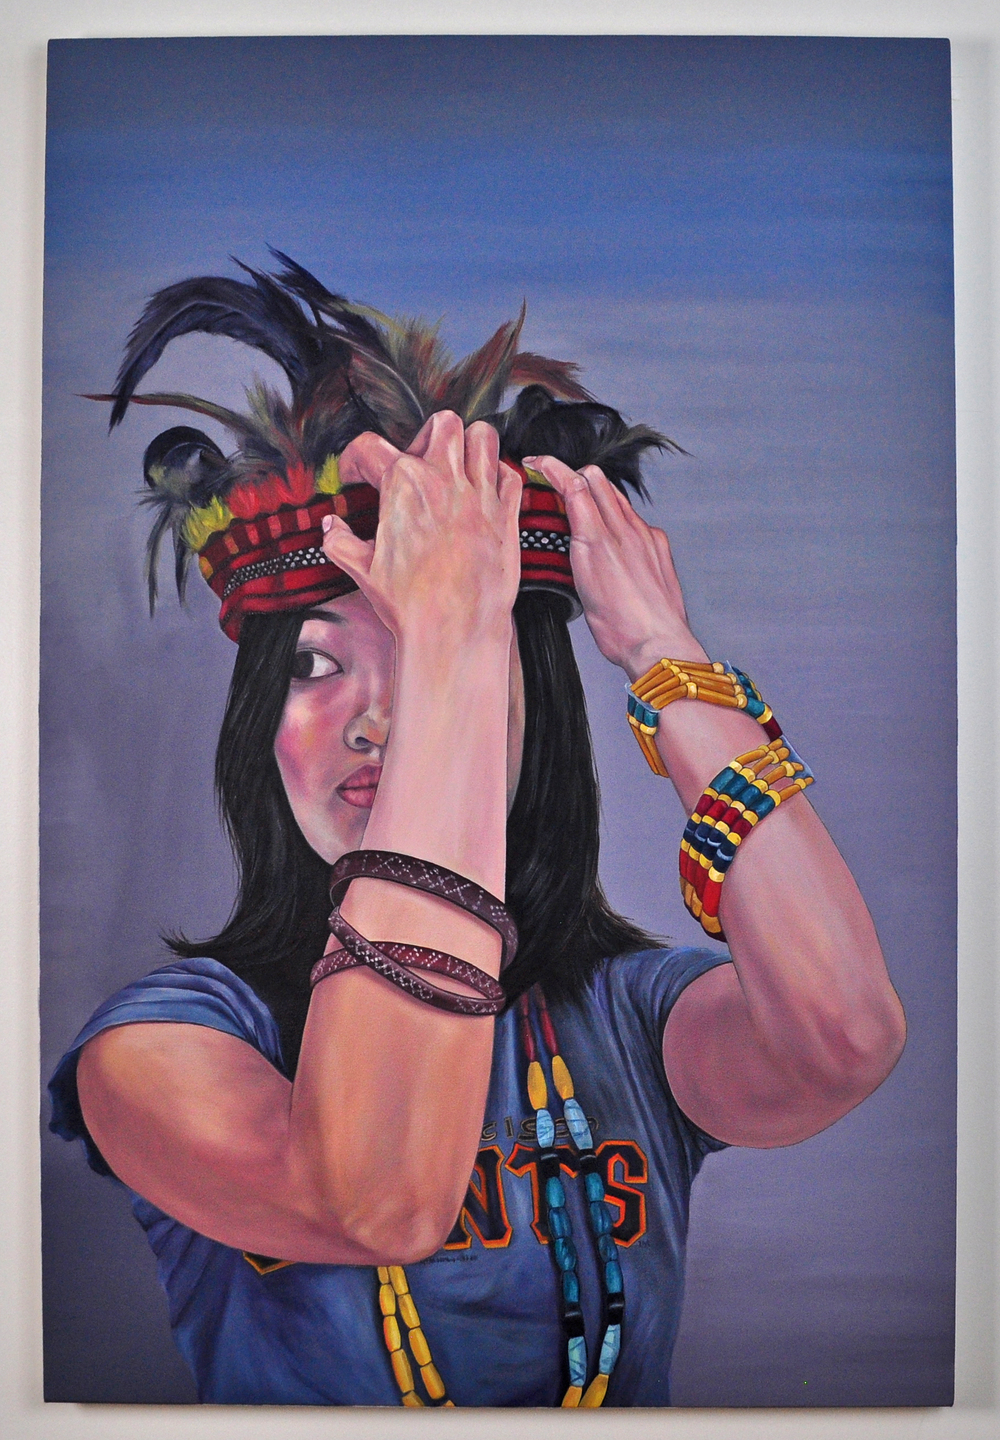 "Self Fitting , 2010. Oil on canvas over panel, 32"" x 48"" (Photo: Ramon Pintado)"